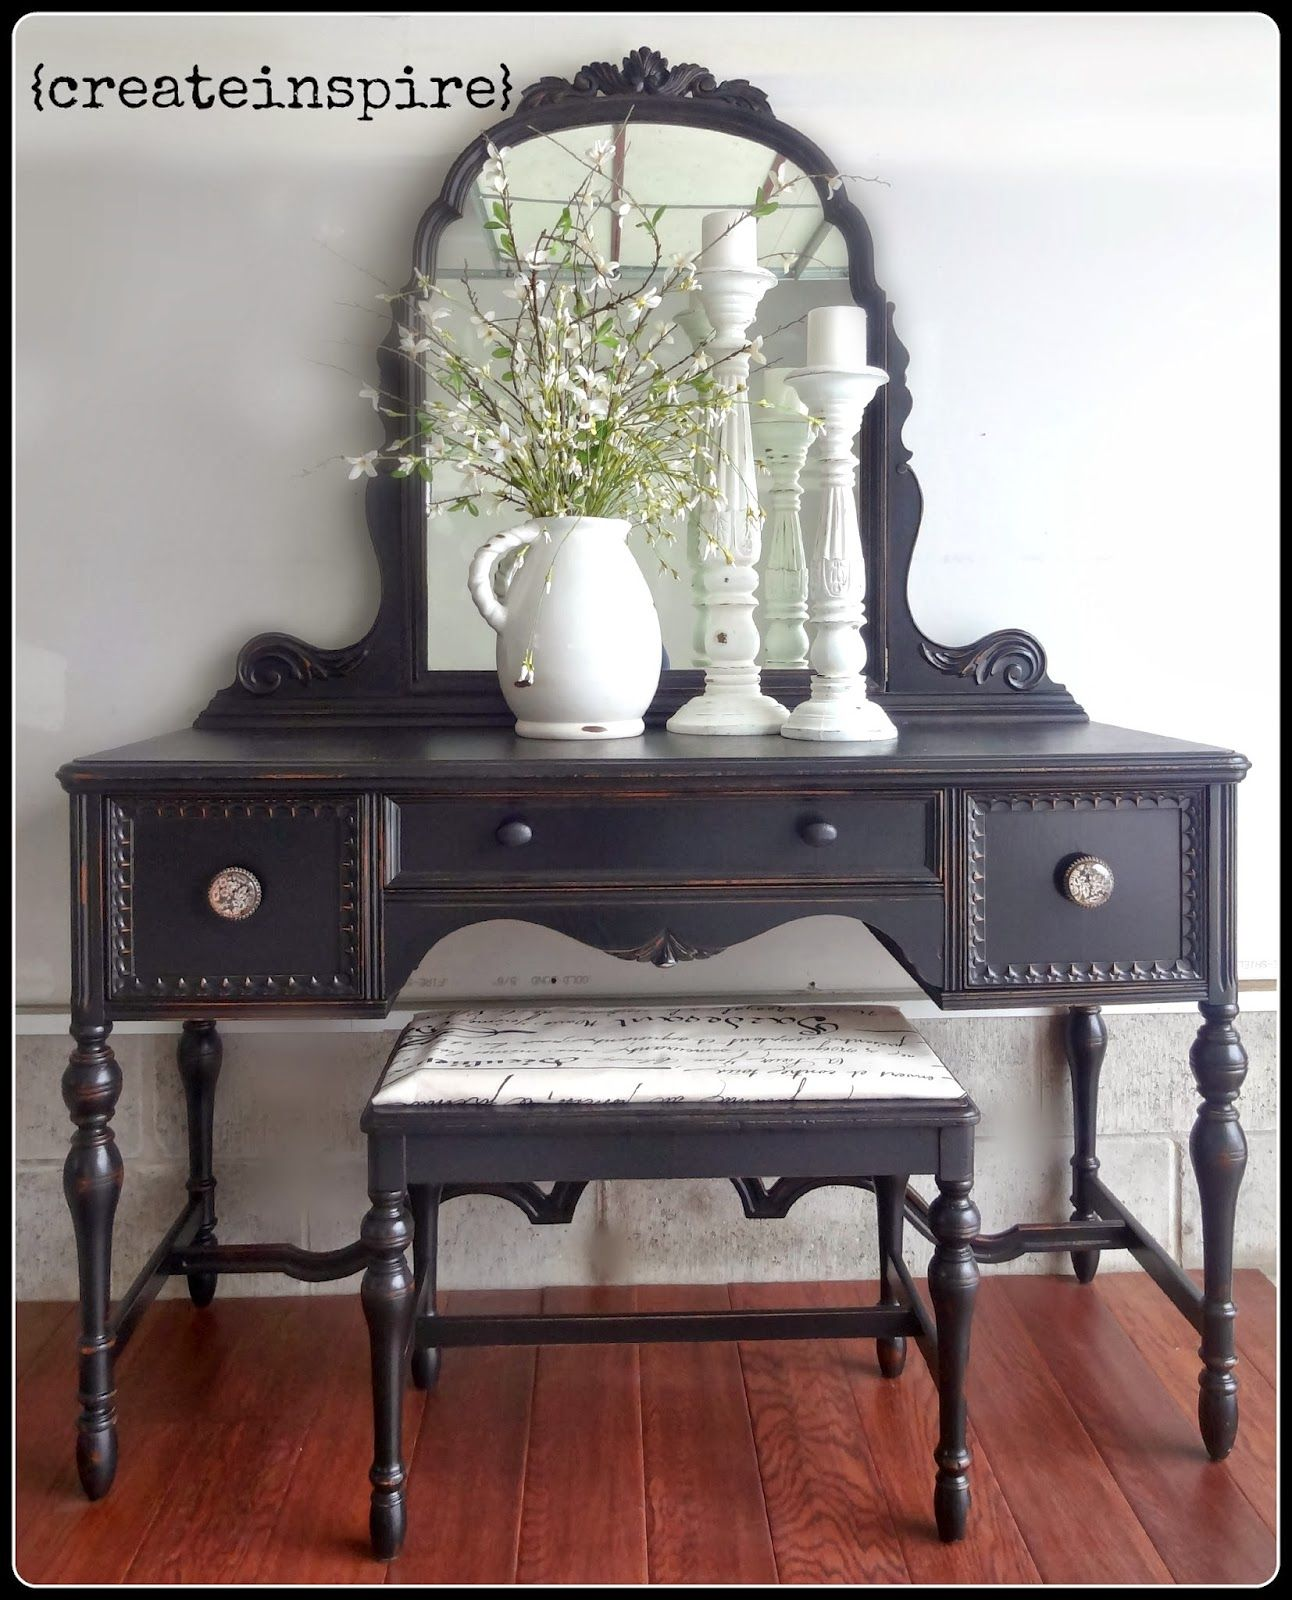 Jul 22 2016 for sale in Bedroom Gorgeous Refinished Vanity